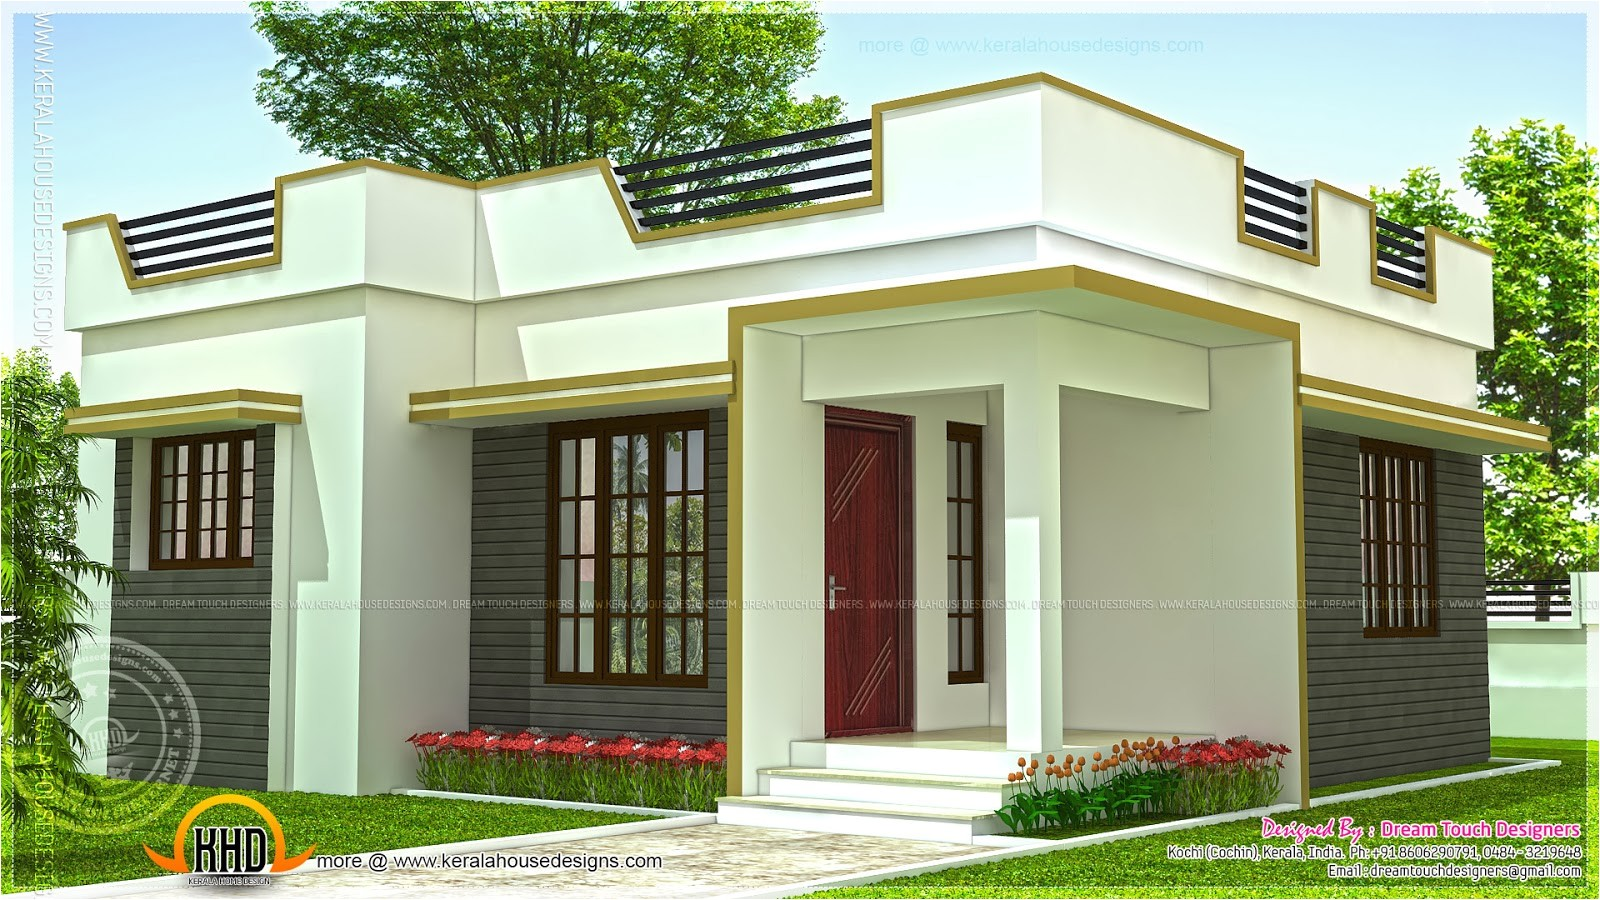 Small Home Plan In Kerala Kerala Small House Plans Joy Studio Design Gallery